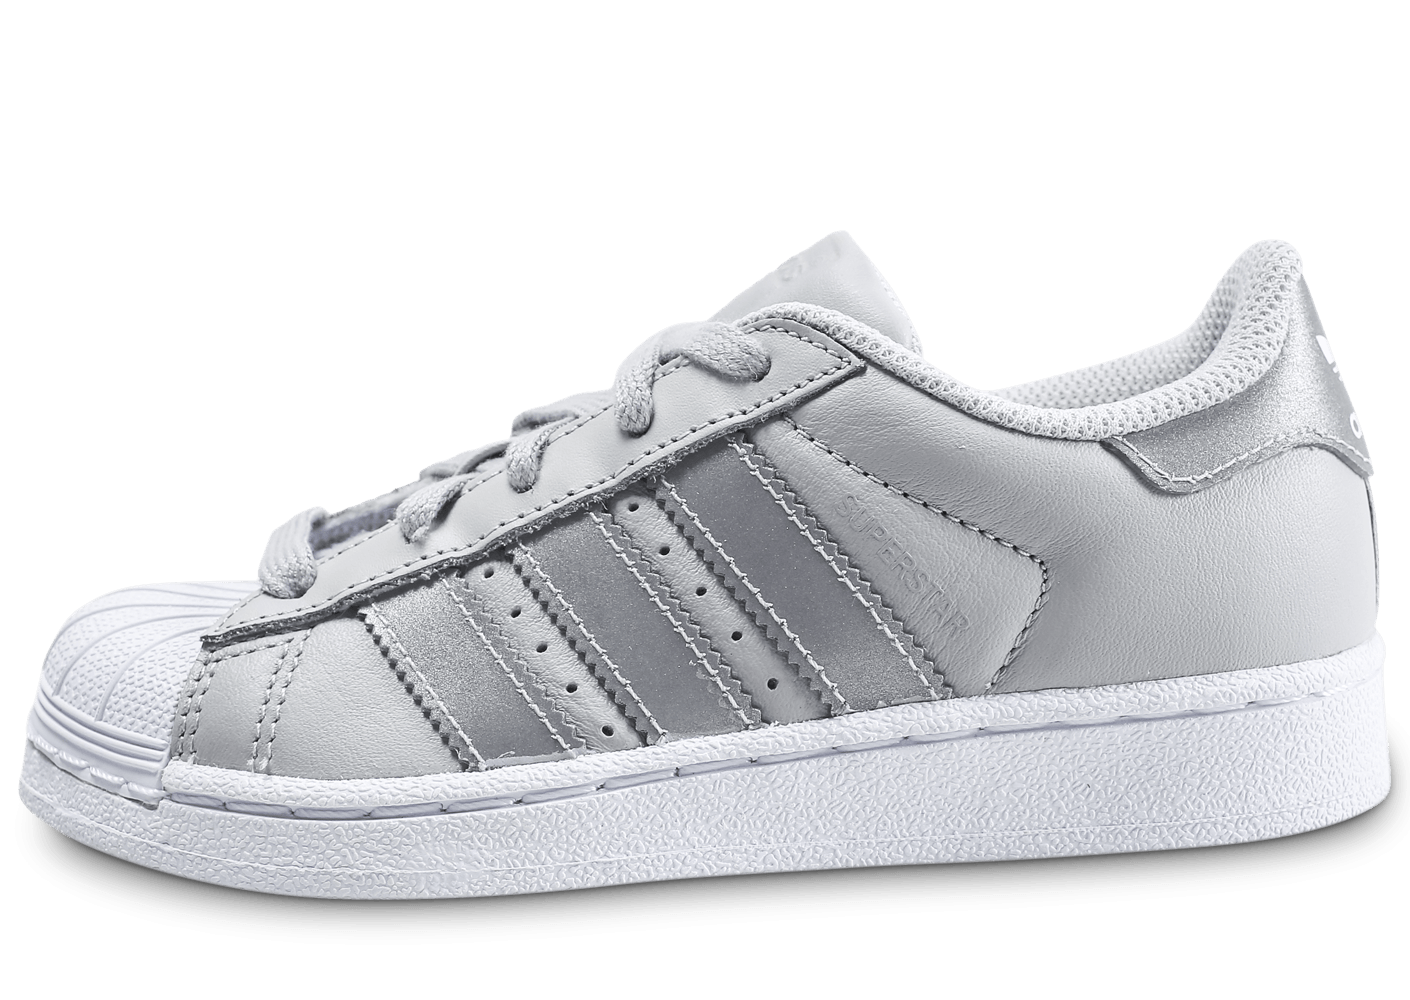 Design Maison Maison Chaussure Design Chaussure Amiens Magasin Amiens Magasin n0wO8Pk